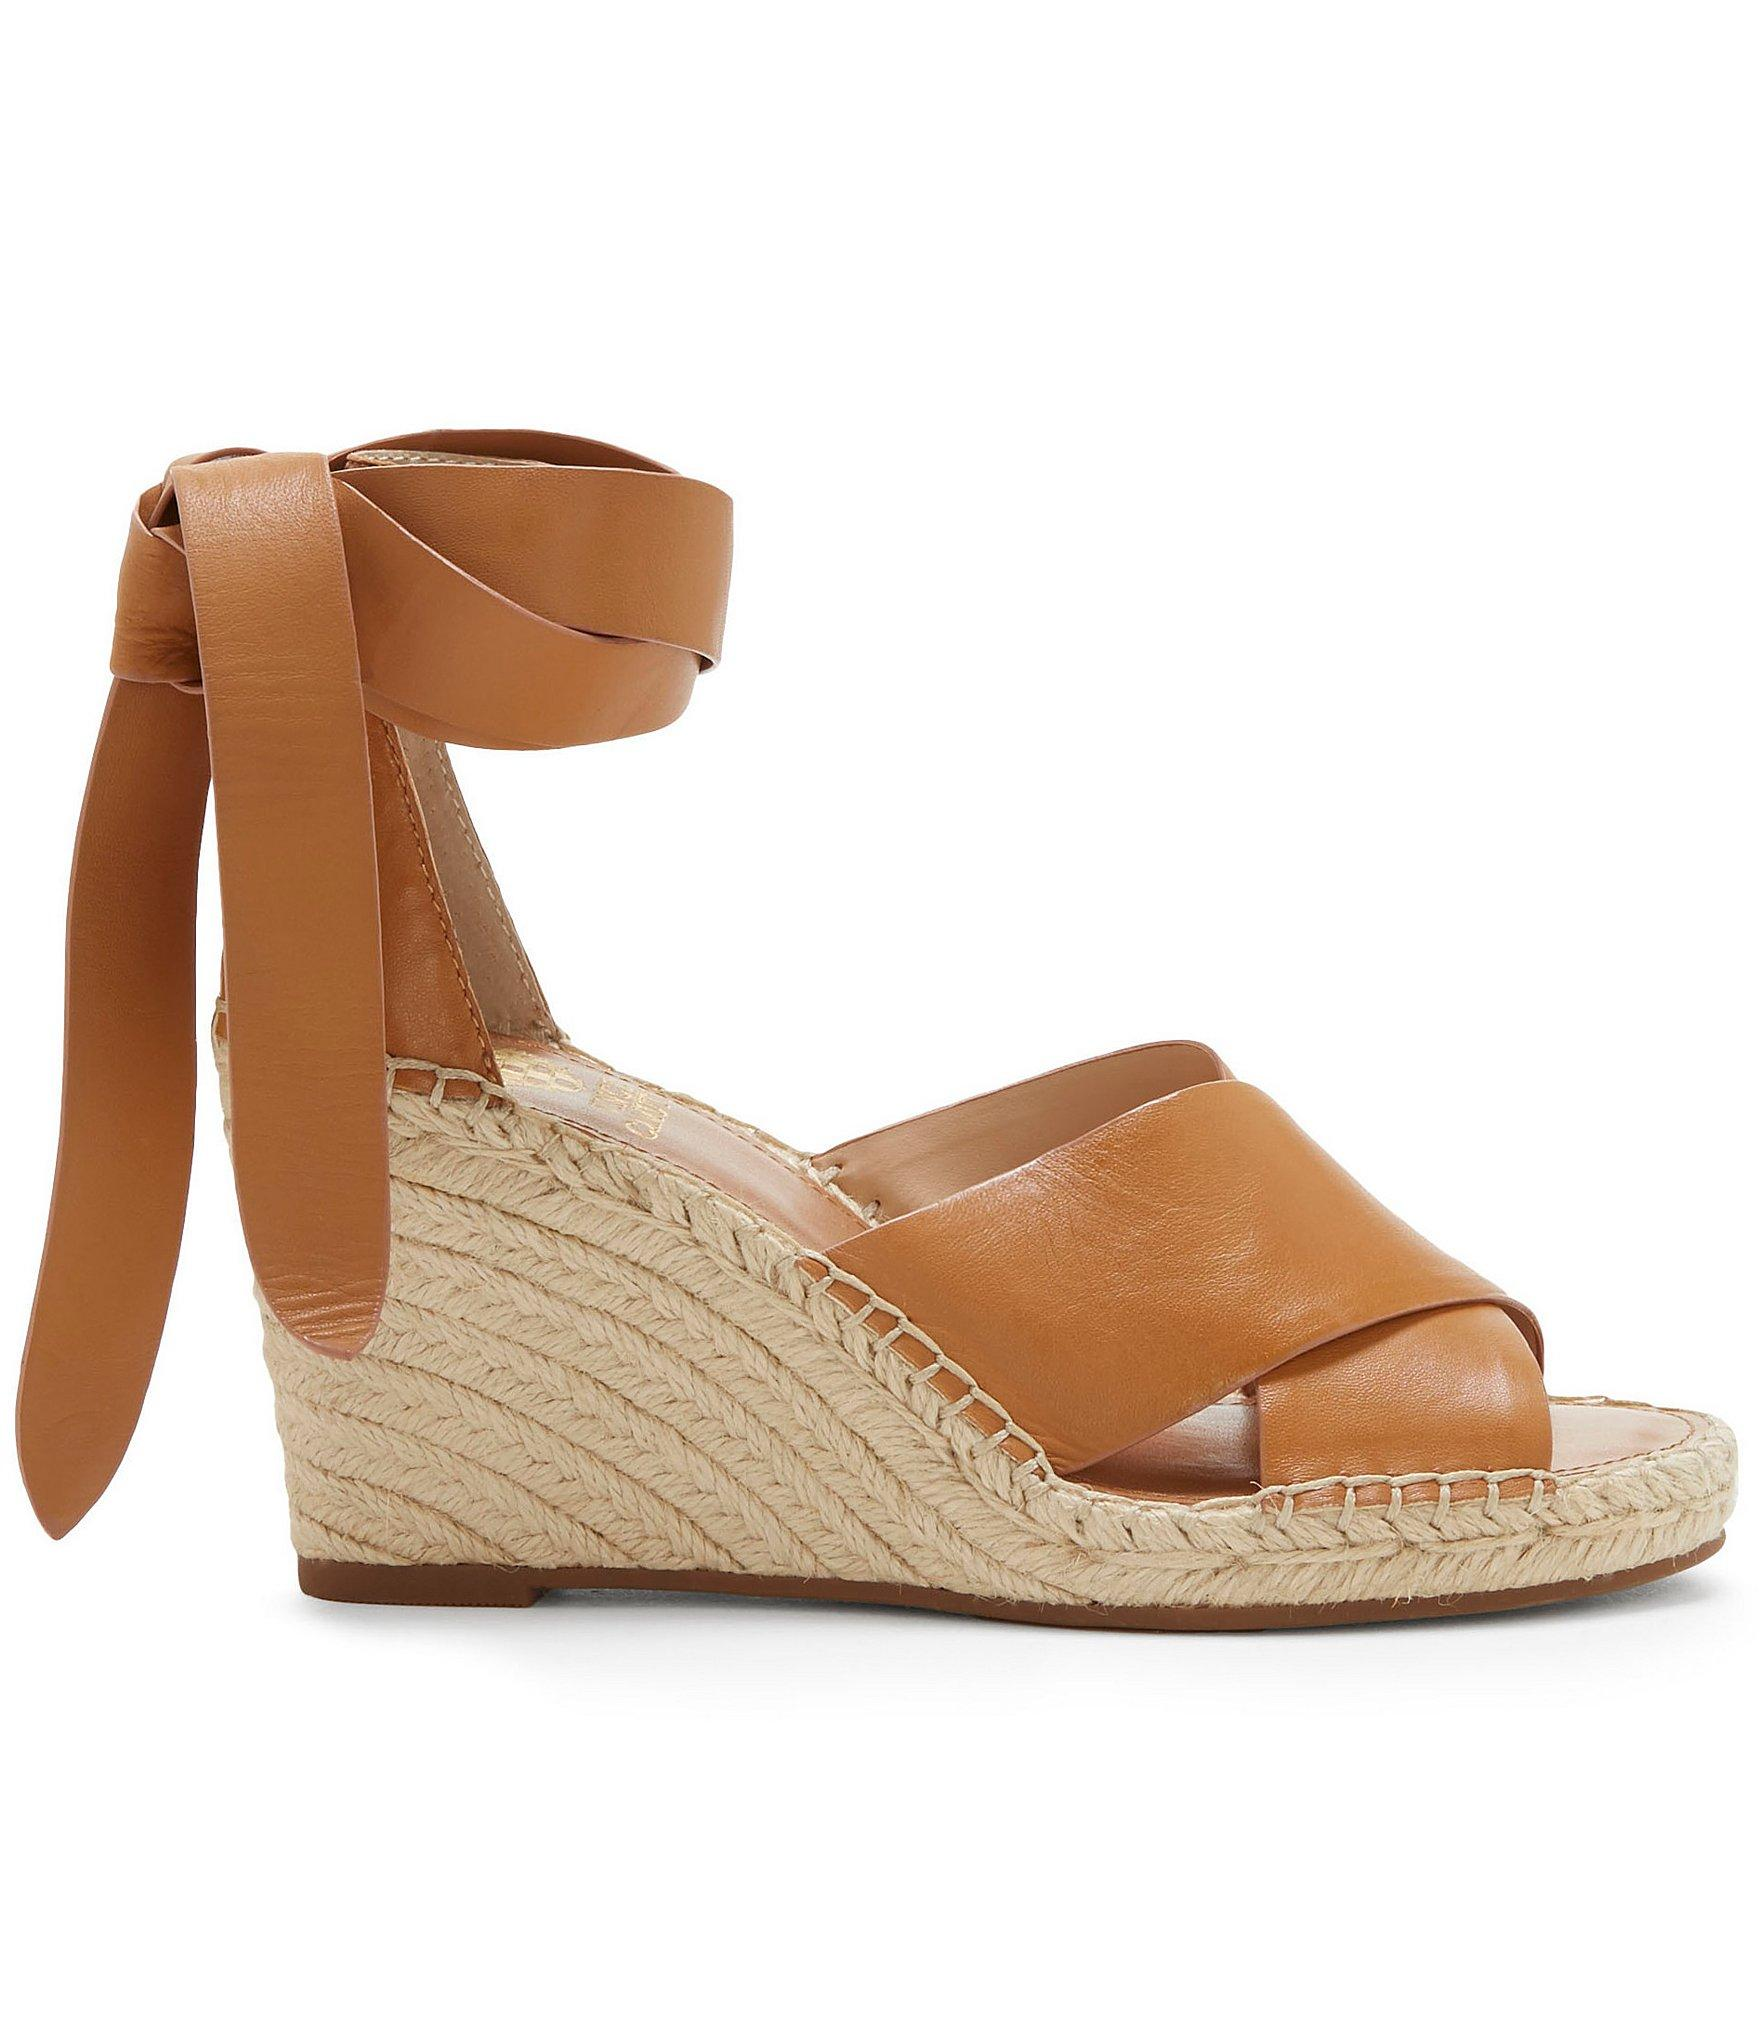 4e1093d1952 Lyst - Vince Camuto Leddy Espadrille Wedges in Brown